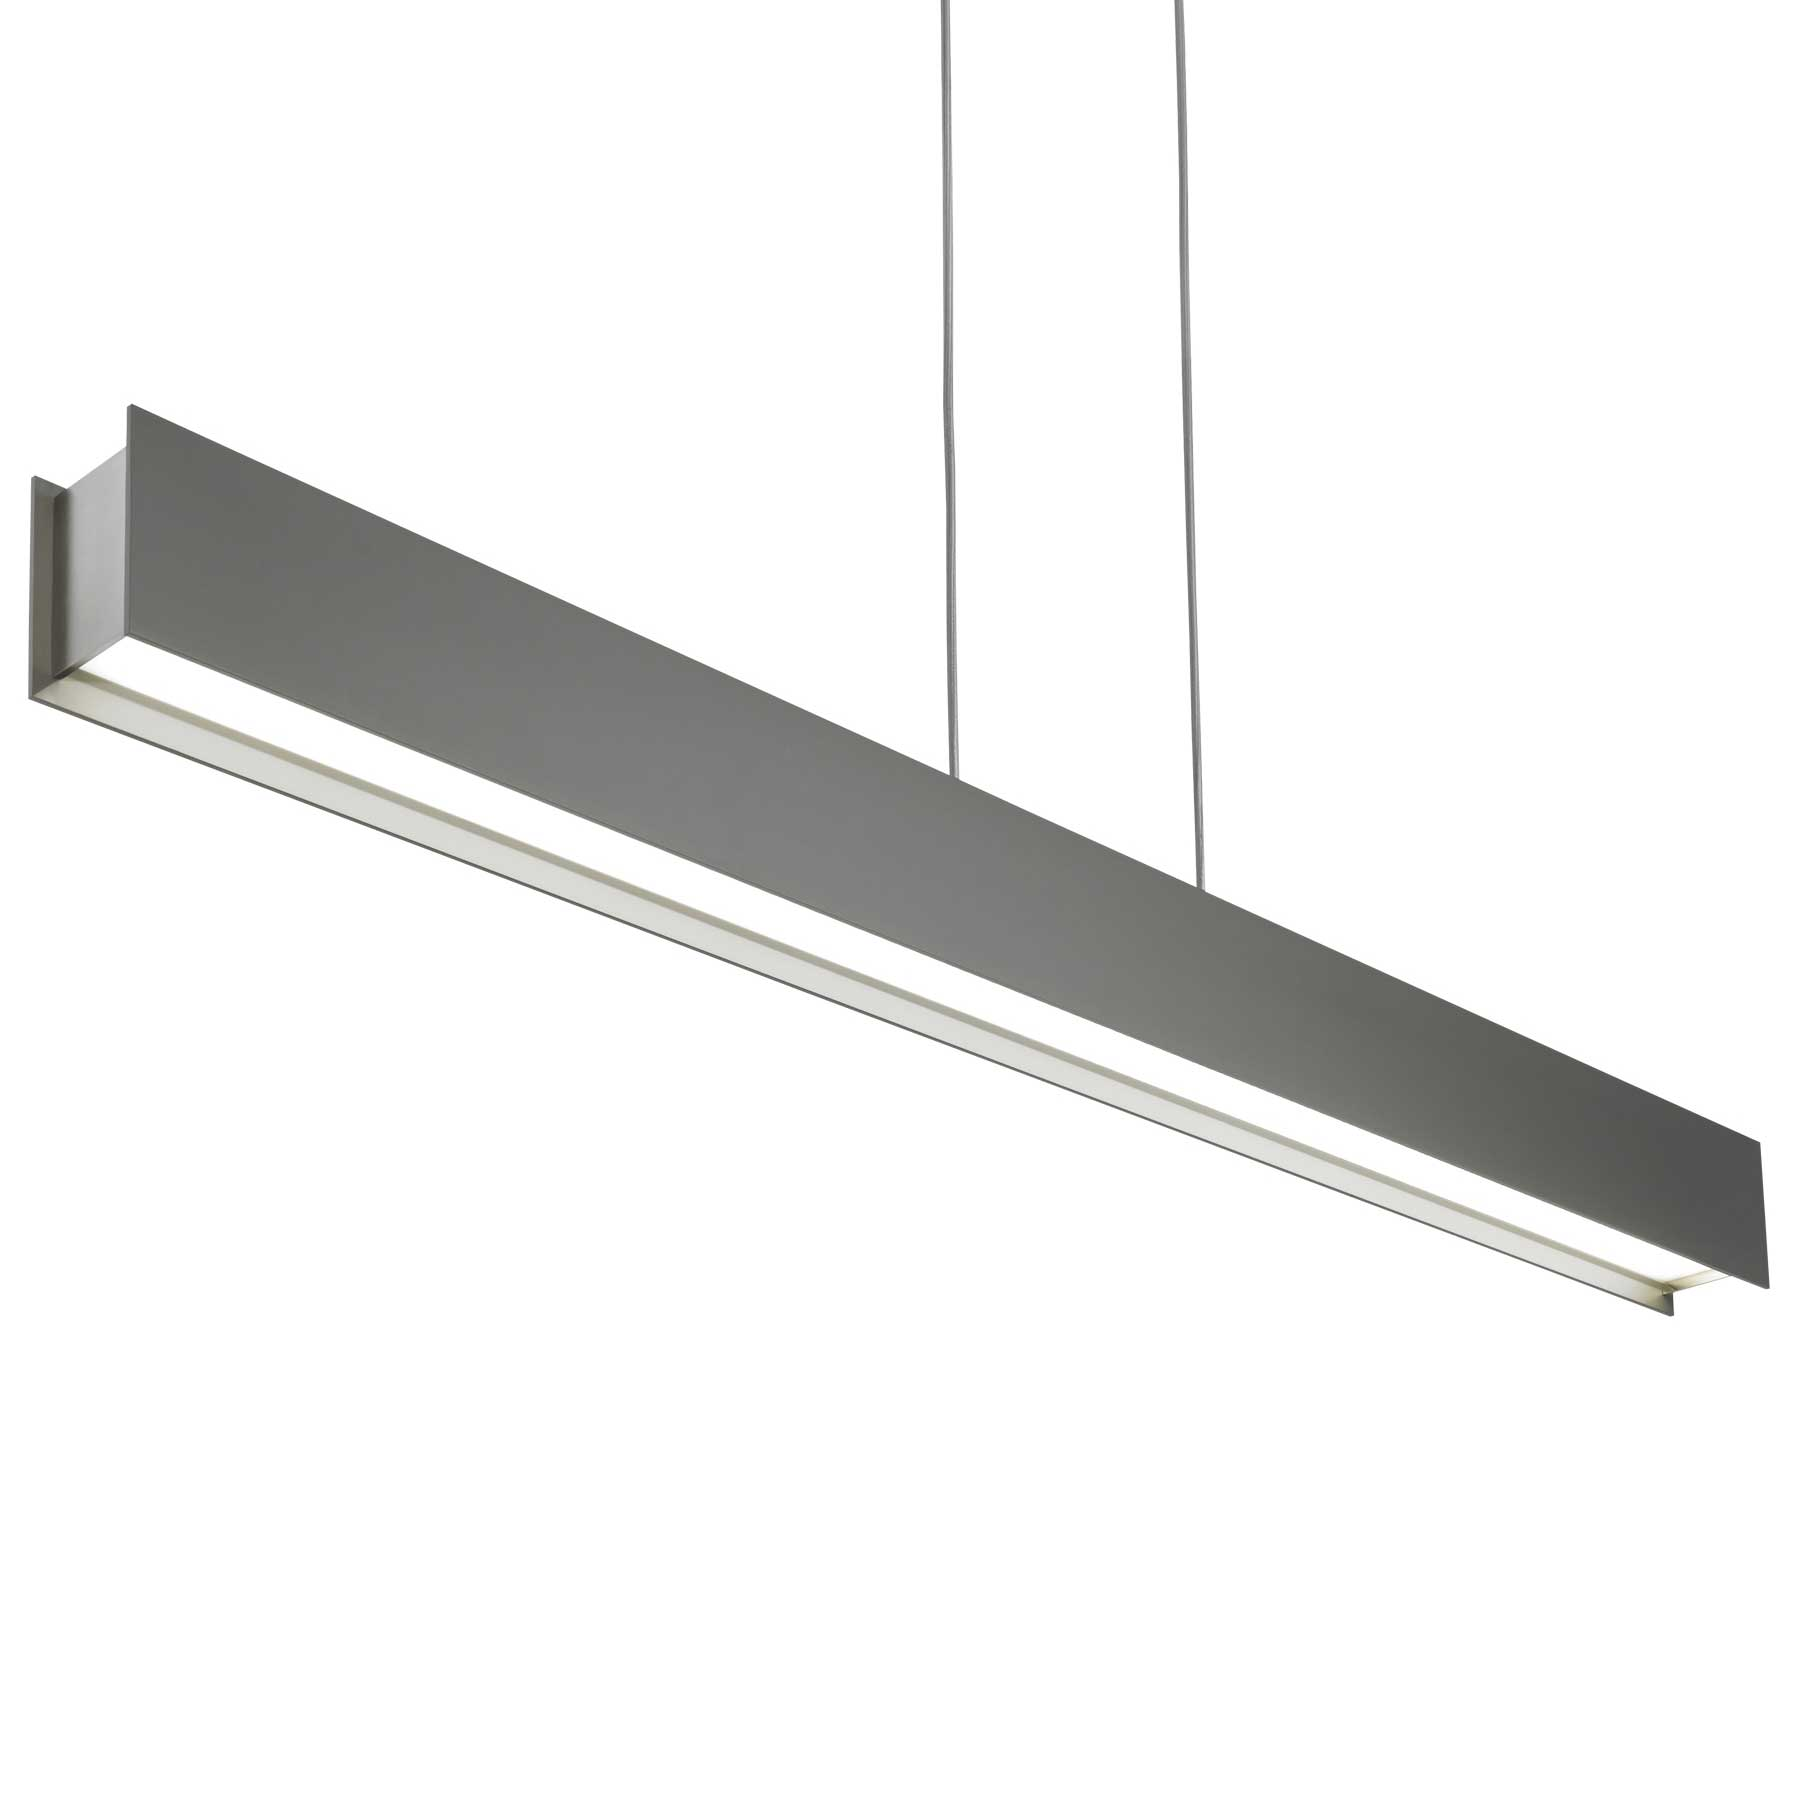 Wac Led Track Lighting Fixtures Vandor Linear Suspension By Tech Lighting | 700lsvanys-led830